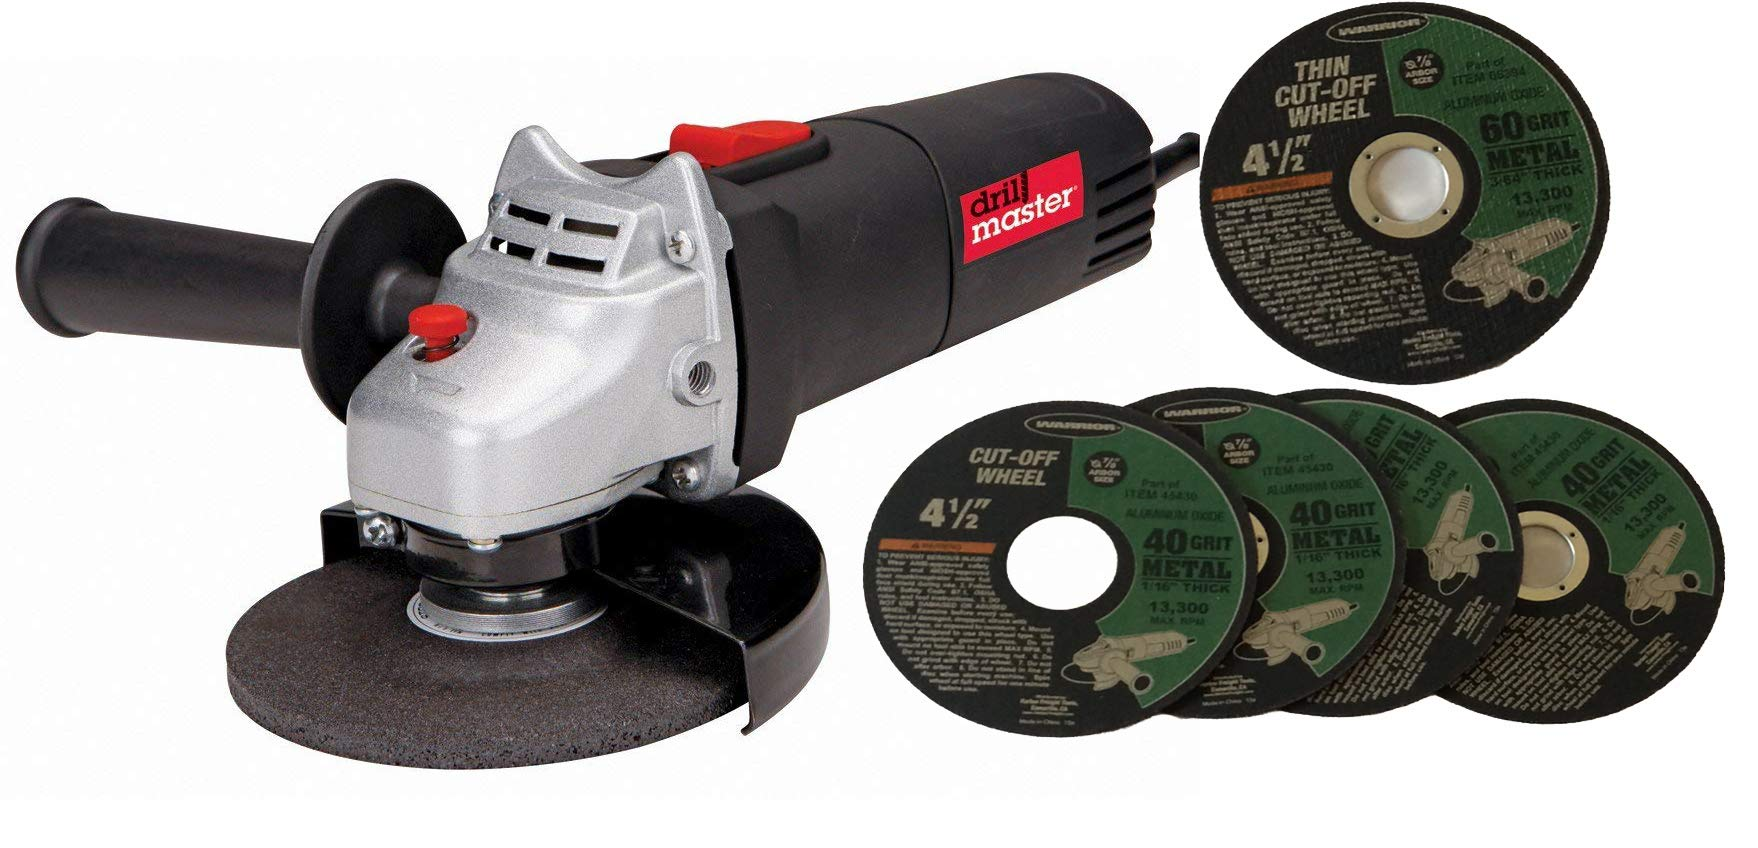 Drill Master 4-1/2'' Angle Grinder Electric Power Tool 120v 60625, 4 Cut-off 40 Grit and 1 Thin Cut-off 60 Grit wheels